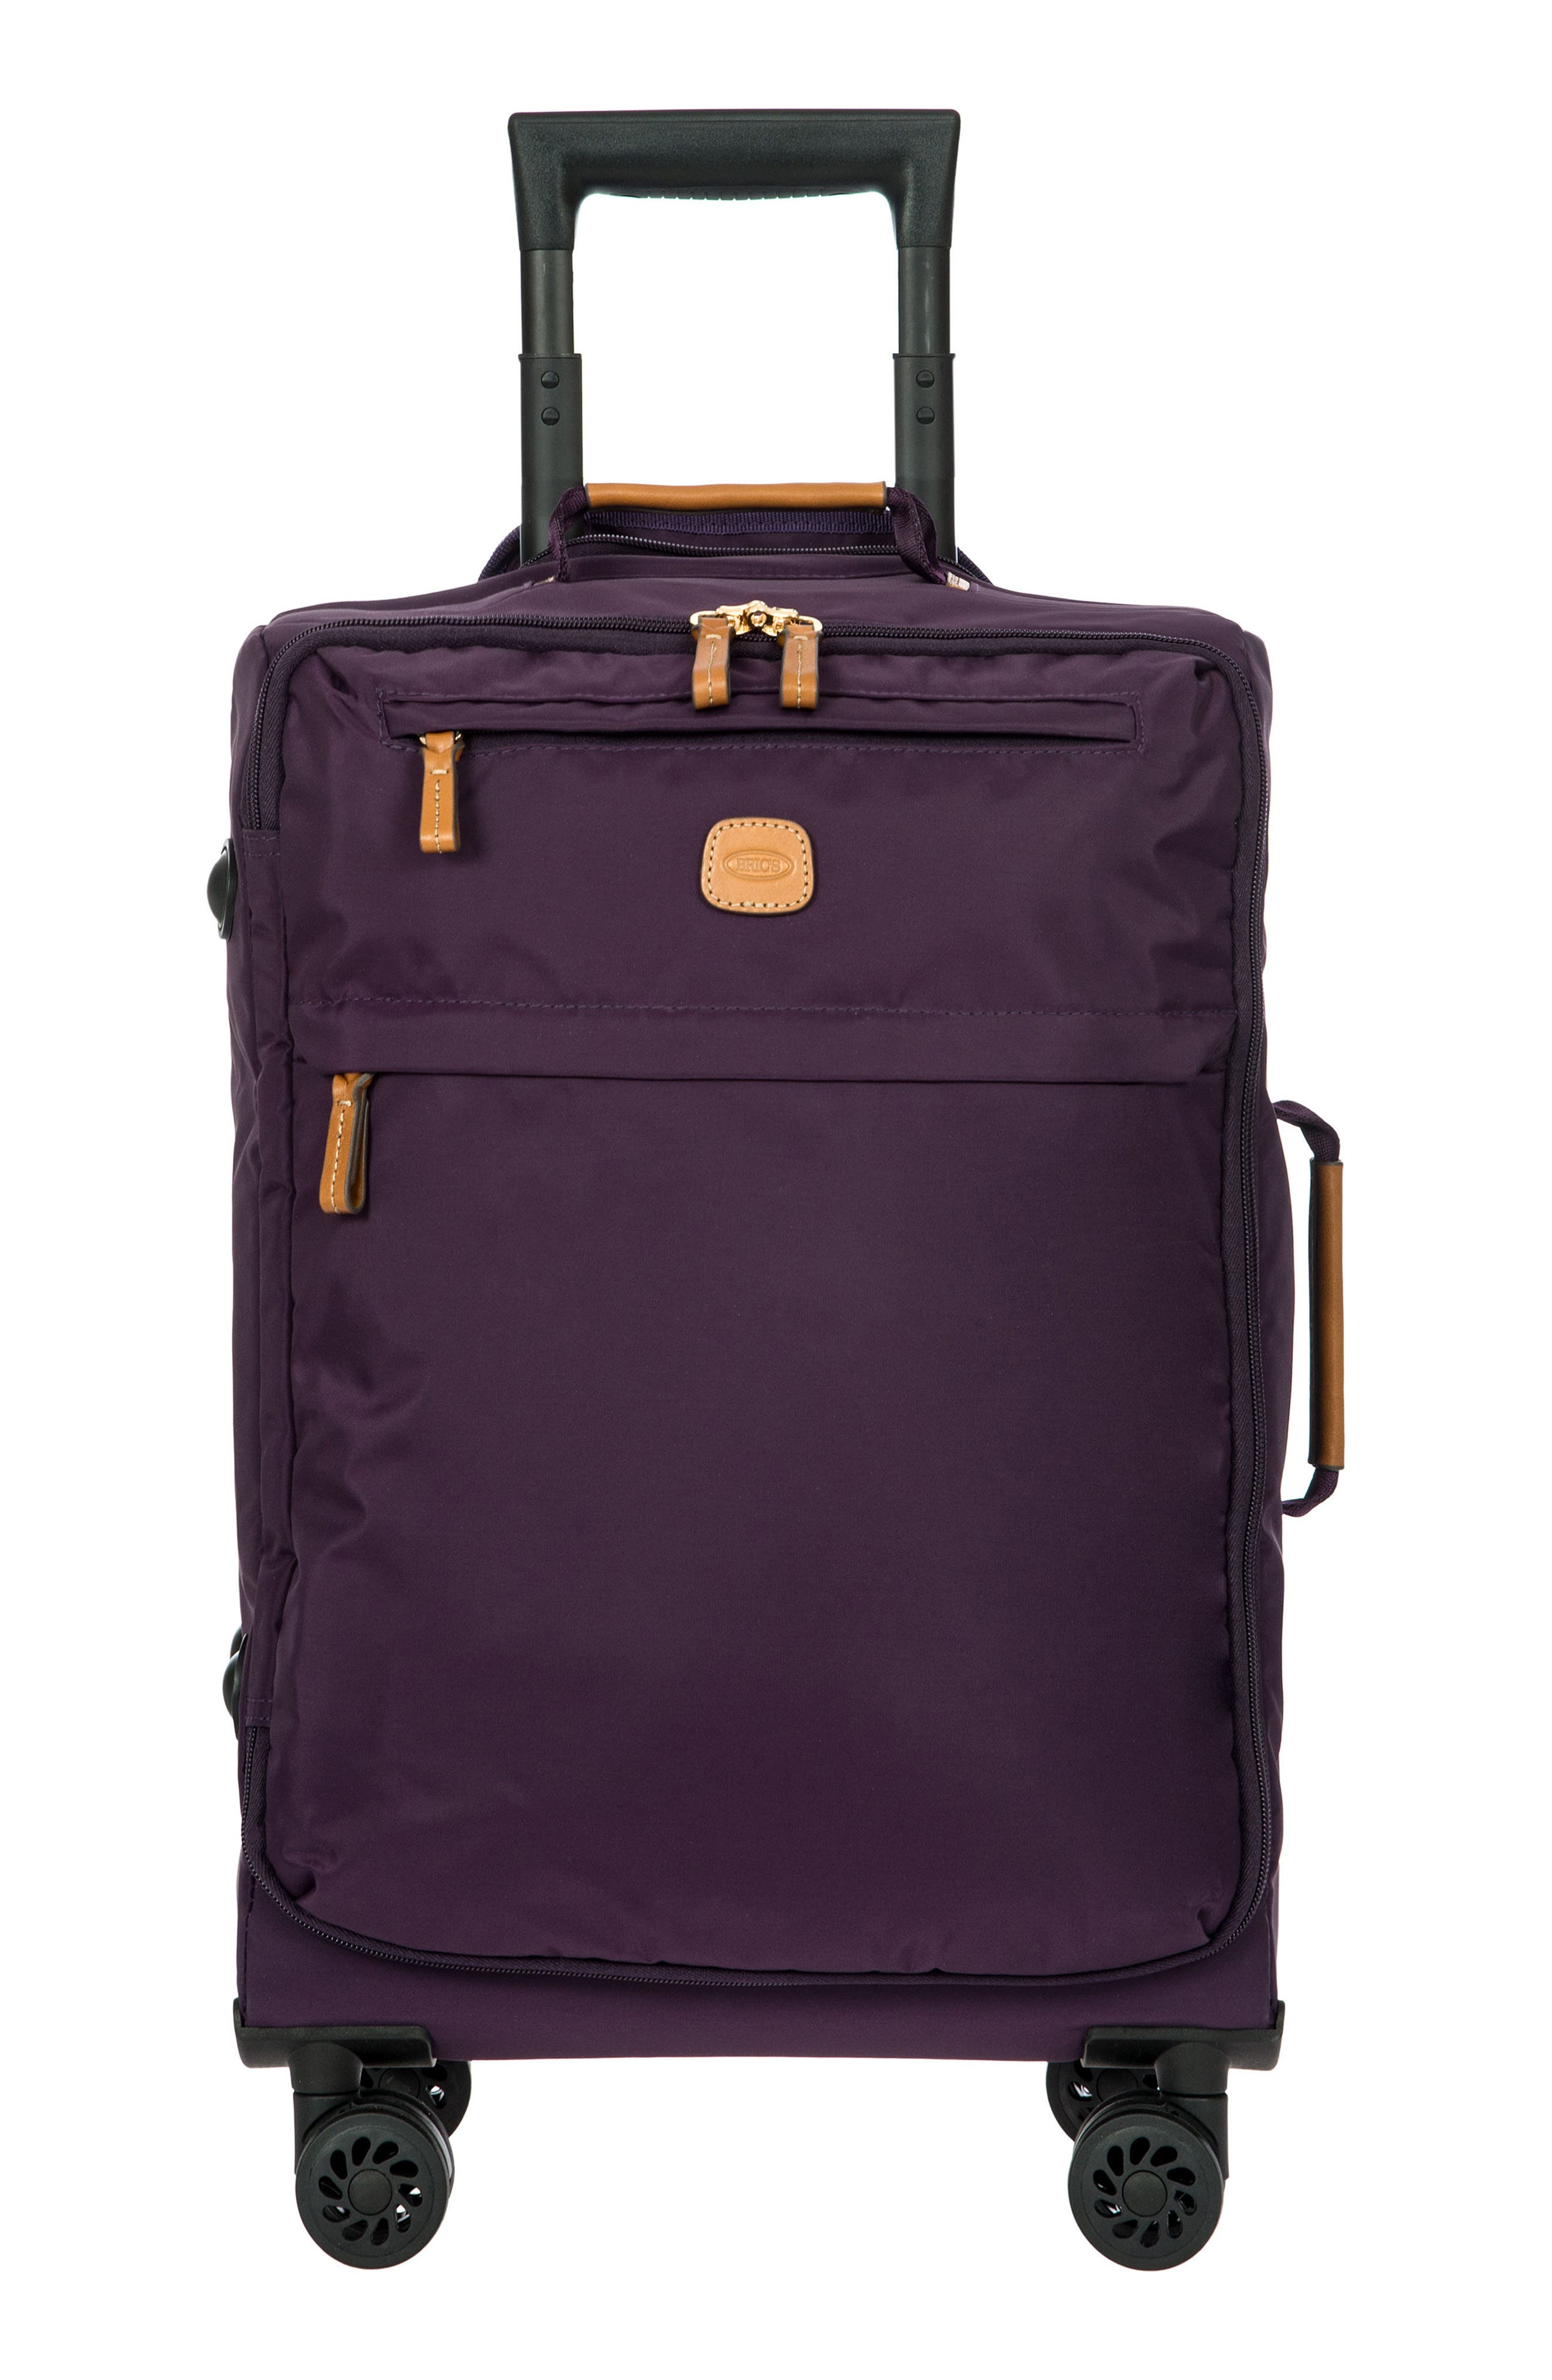 Main Image - Bric's X-Bag 21-Inch Spinner Carry-On